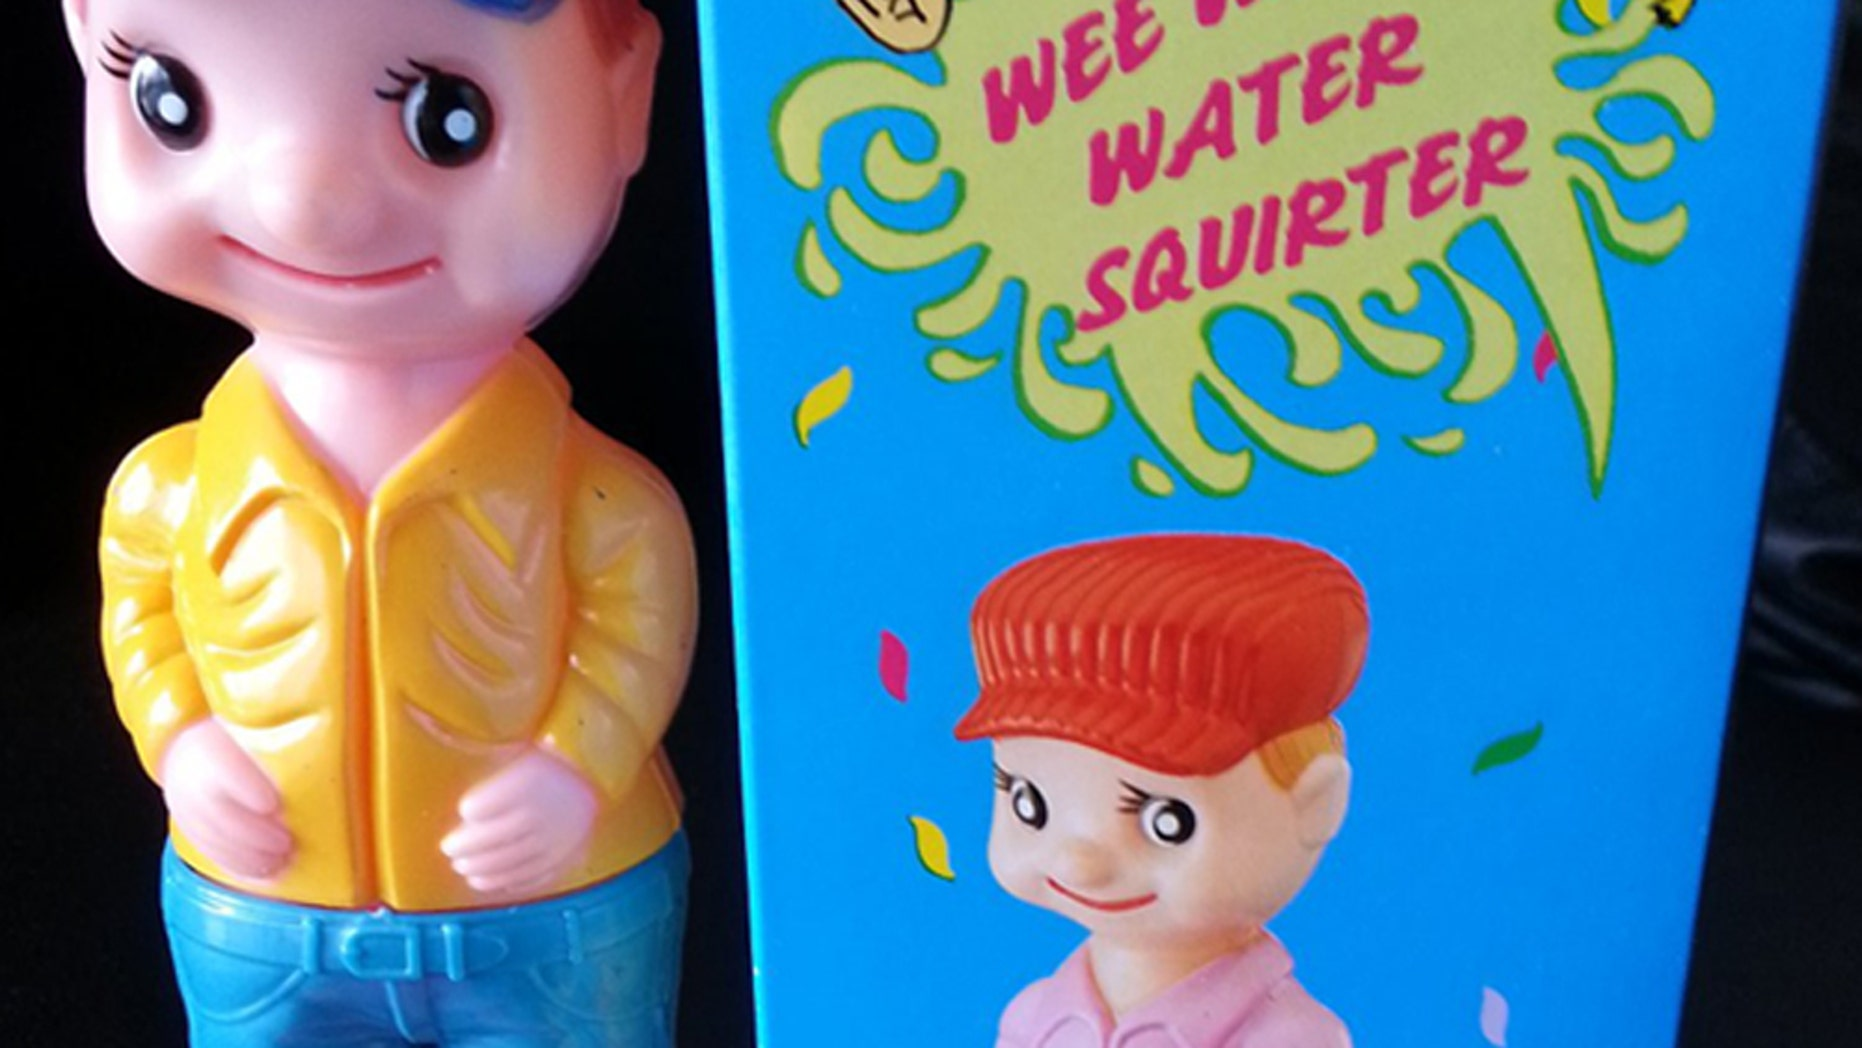 Is this innocent-looking Wee Pee squirting toy a sexual predator?